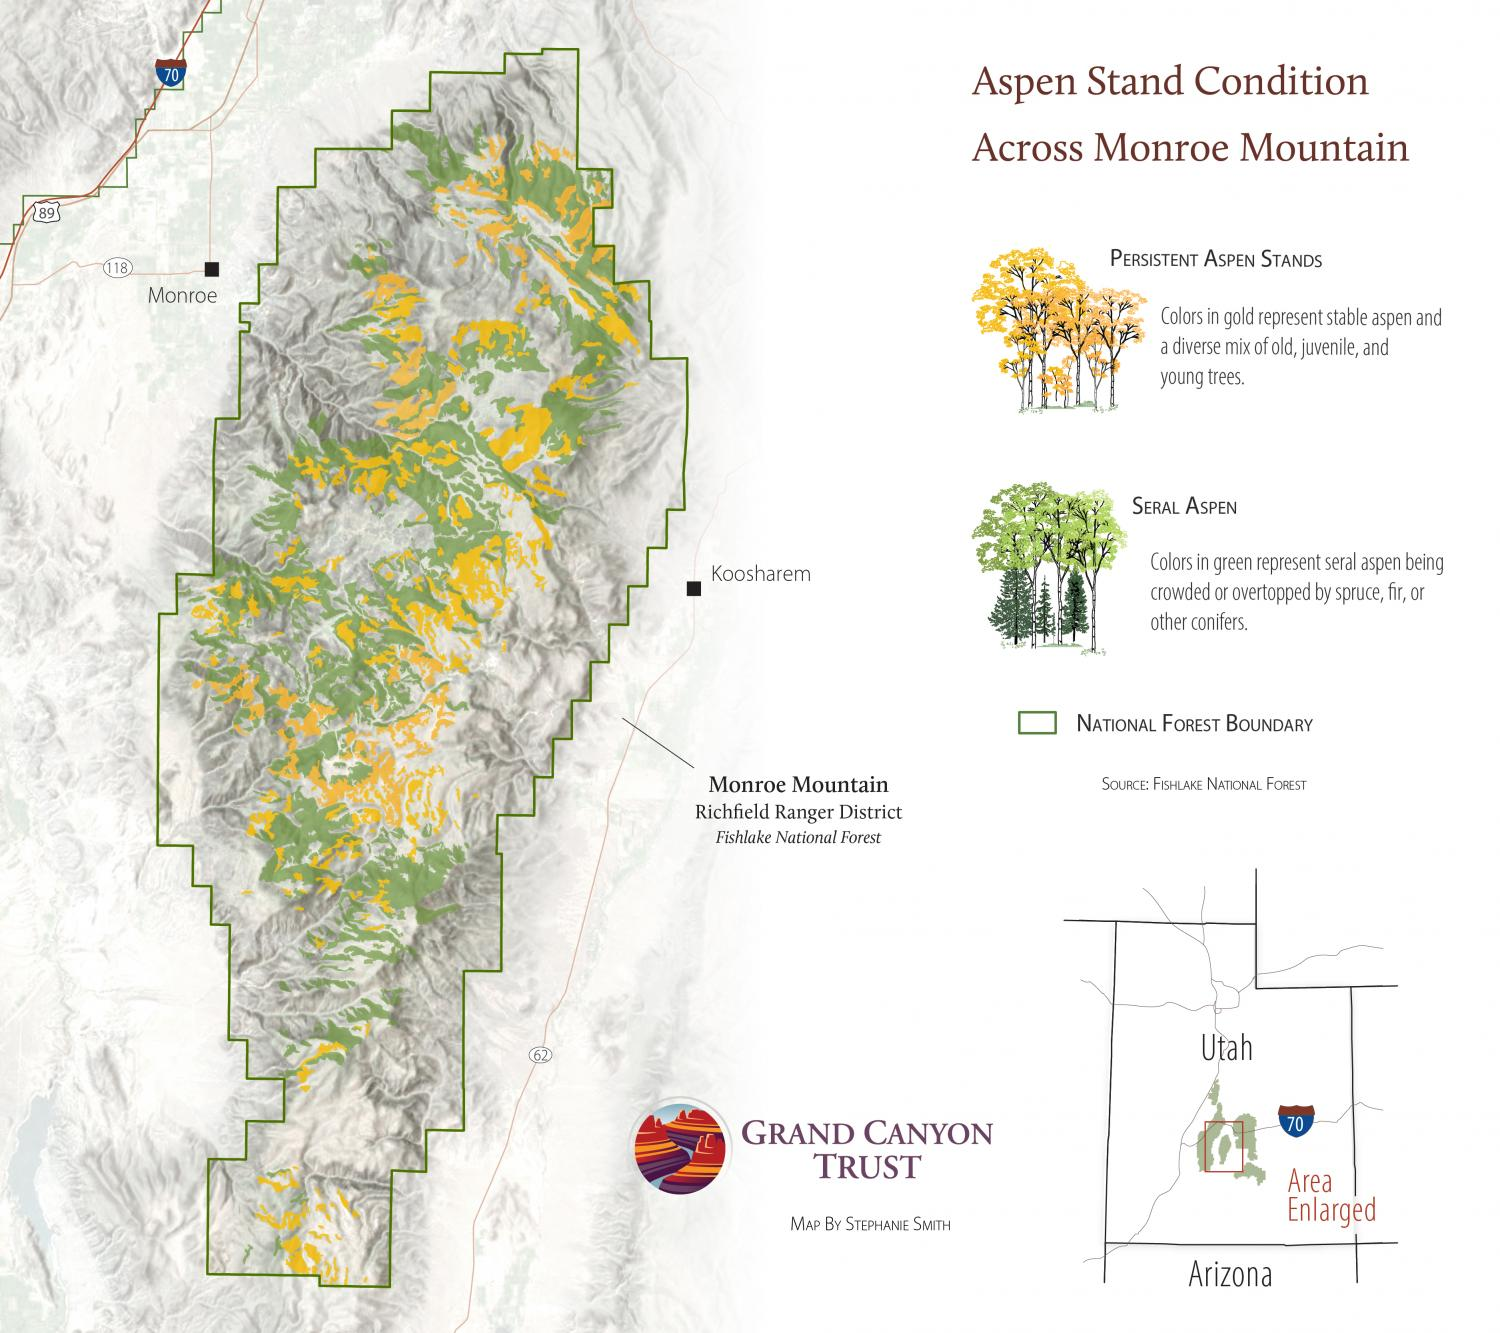 Map of Monroe Mountain aspen stand condition.